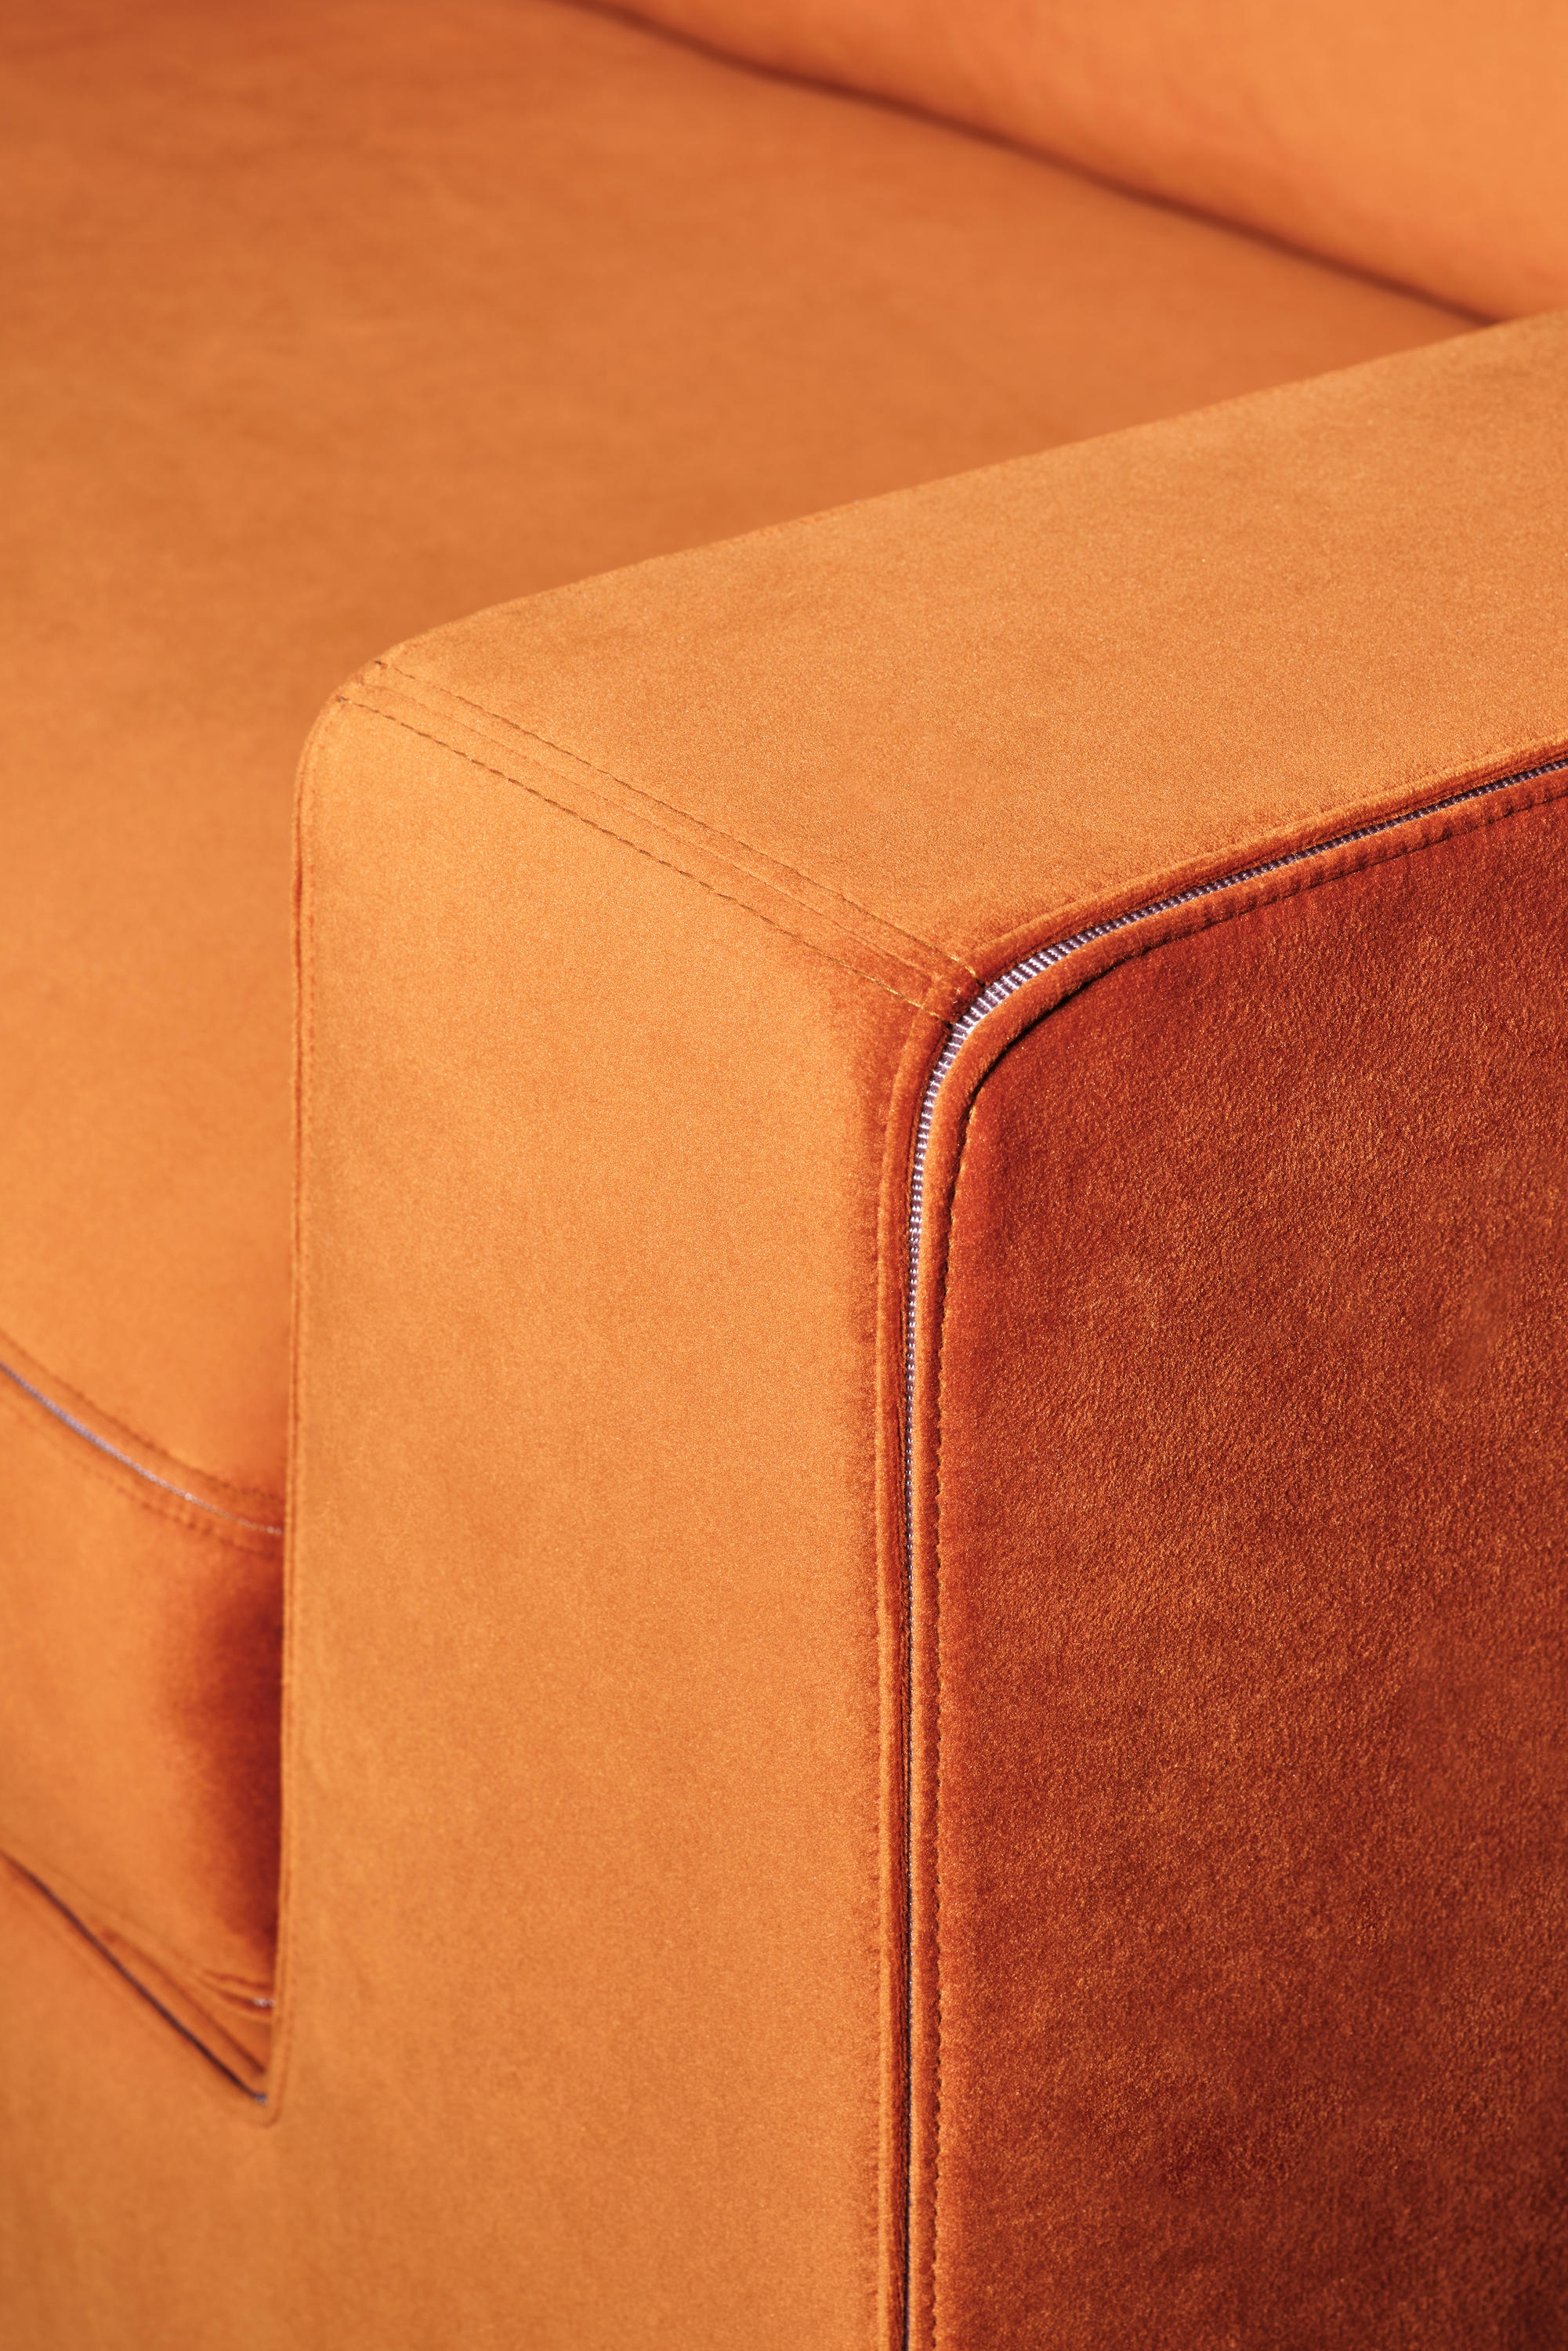 Sofa Veloursleder Nelson Sofa - Sofas From Christine Kröncke | Architonic